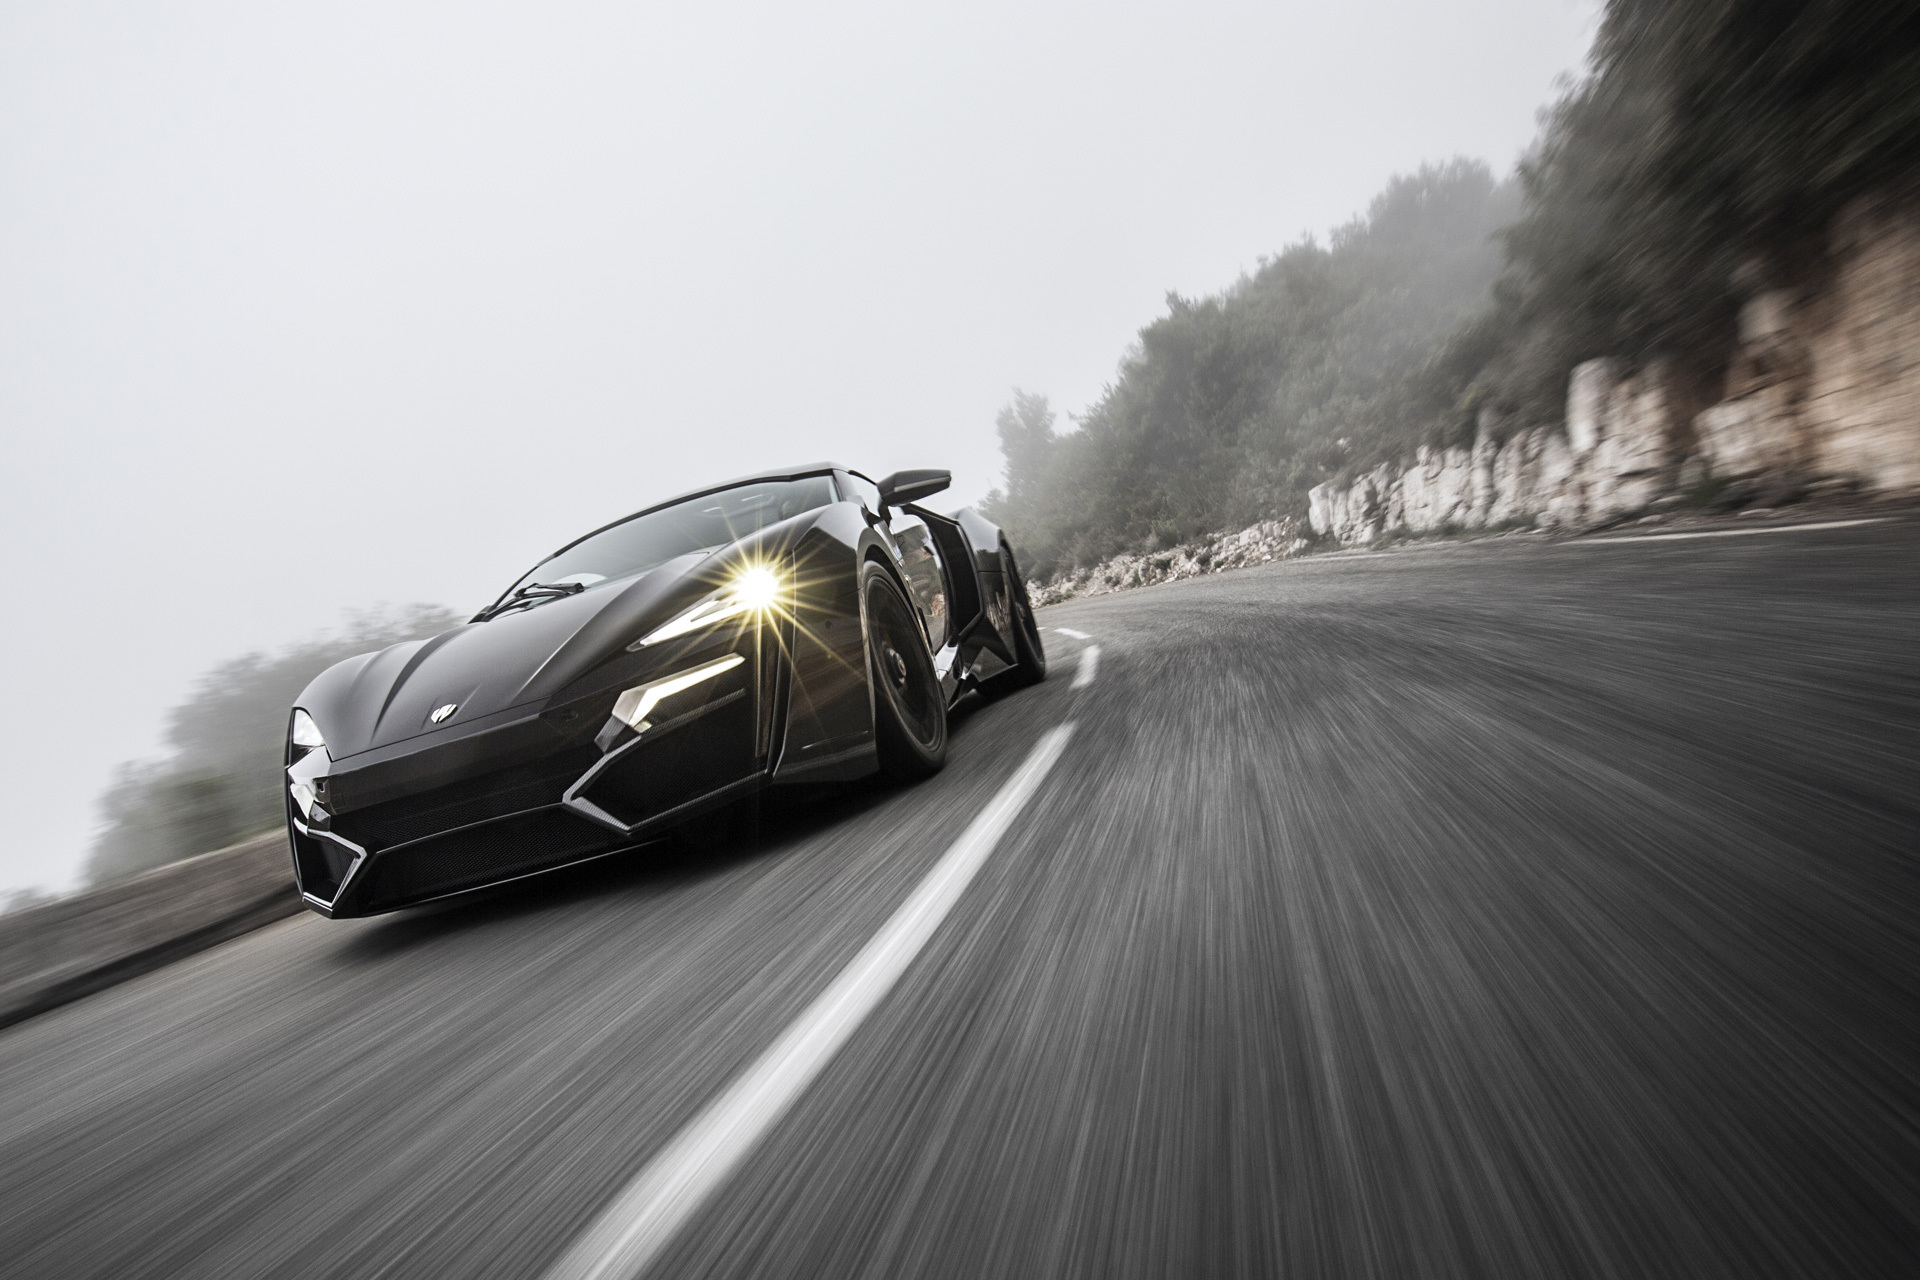 Lykan hypersport wallpapers images photos pictures backgrounds - Lykan hypersport wallpaper 1920x1080 ...